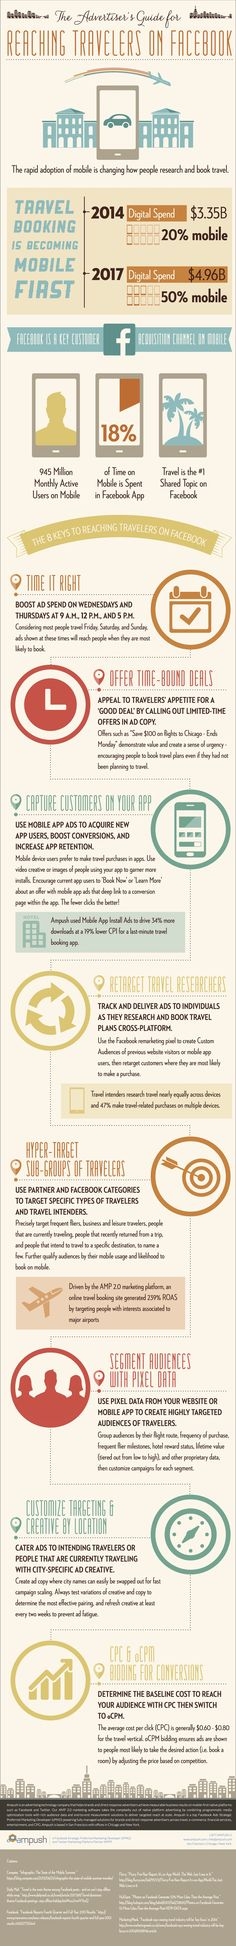 INFOGRAPHIC: Reaching Travelers on Facebook - AllFacebook